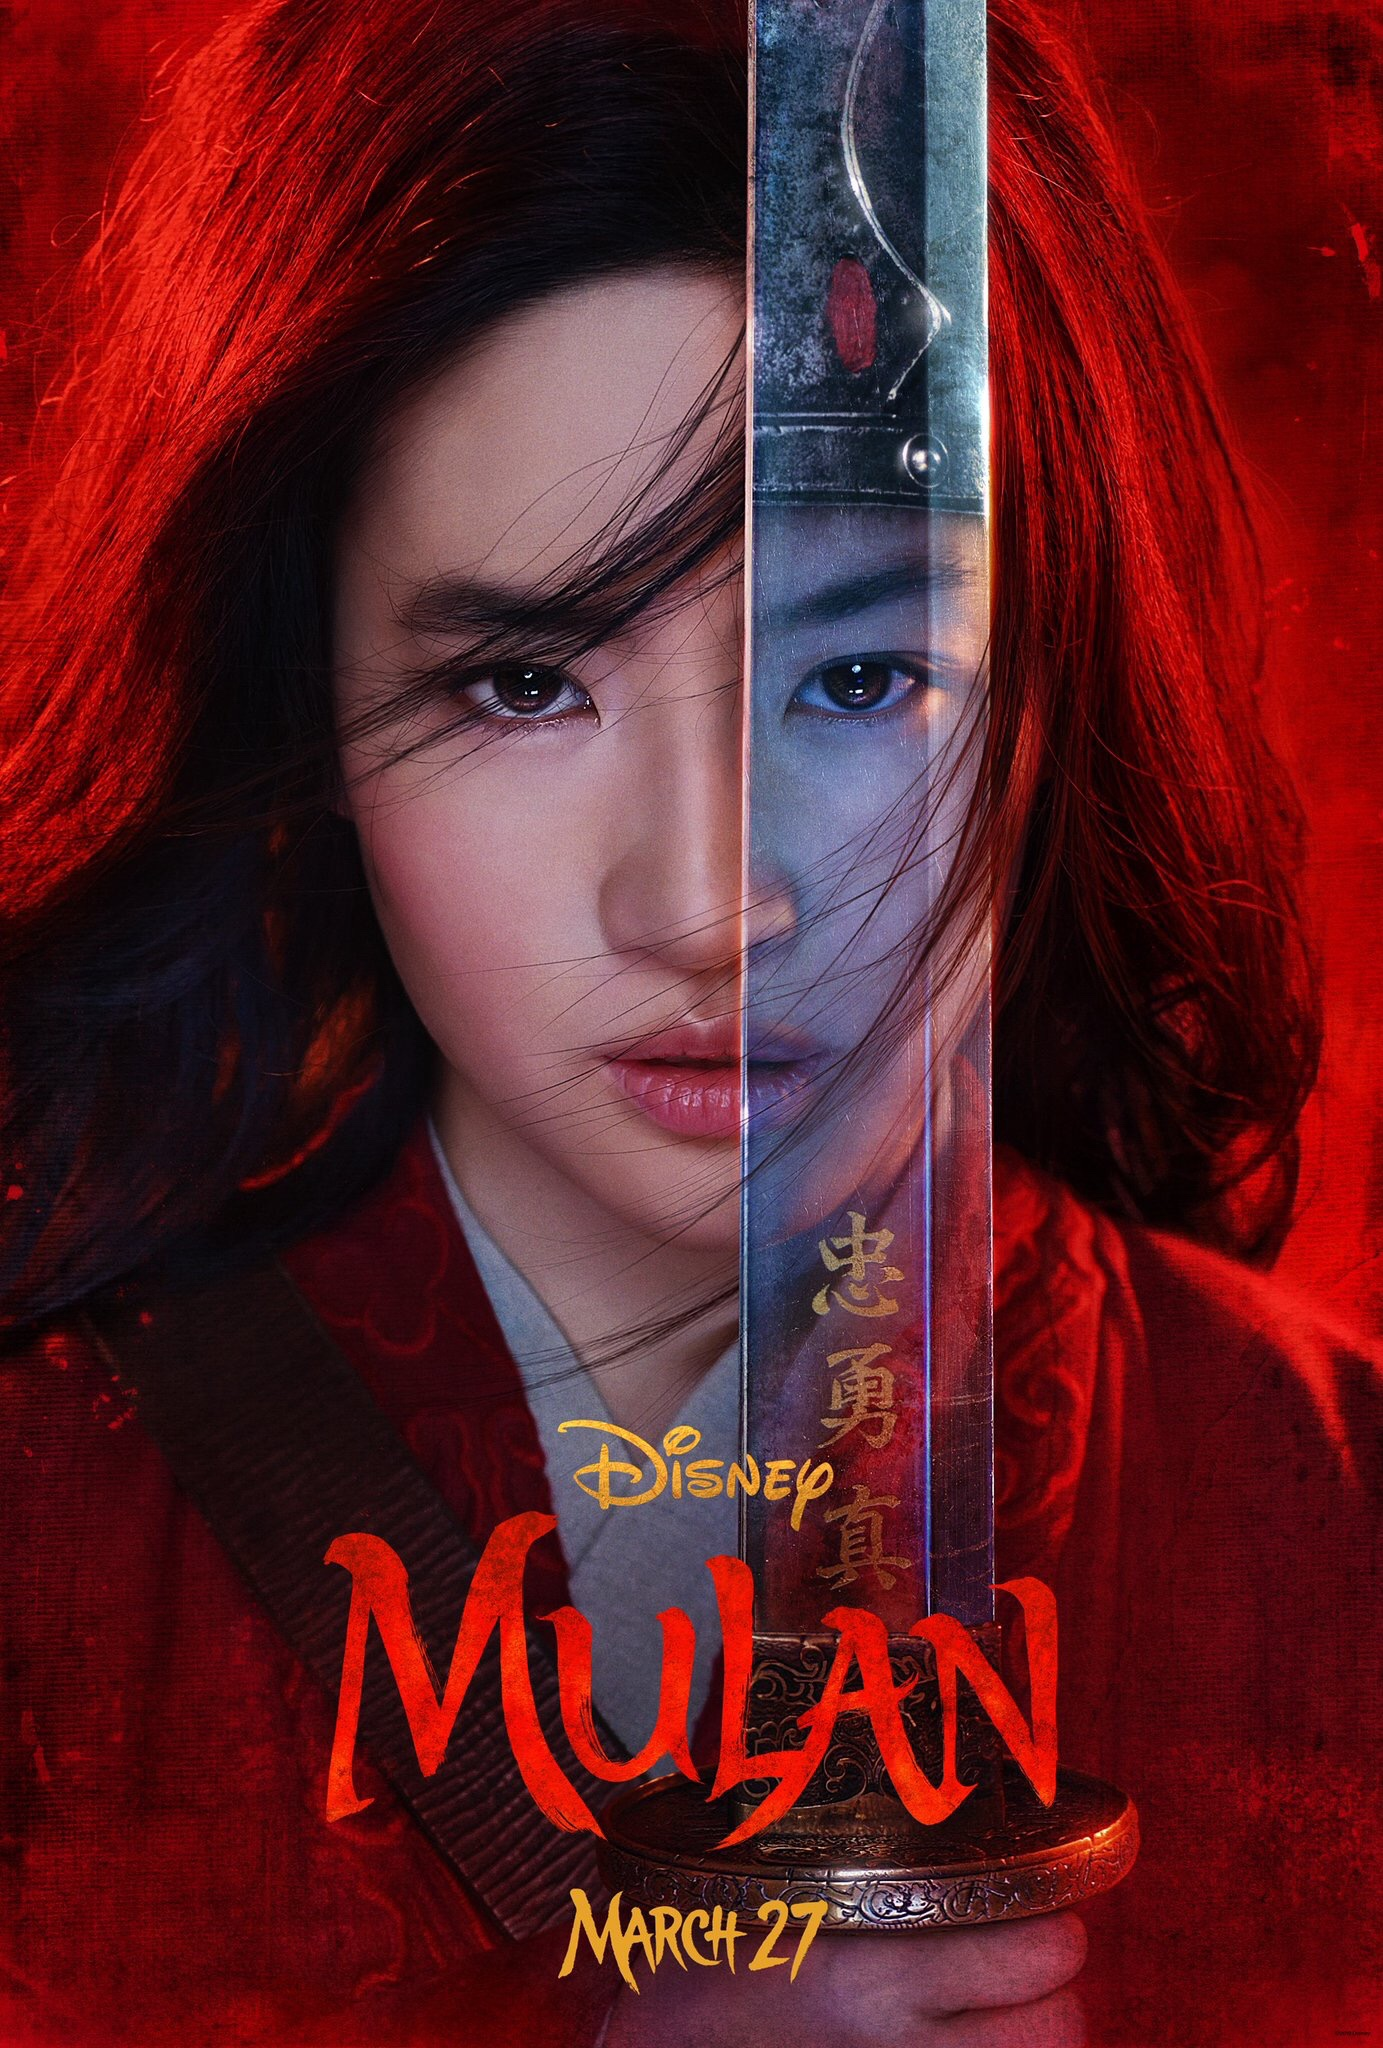 Mulan-2020-movie-poster.jpeg